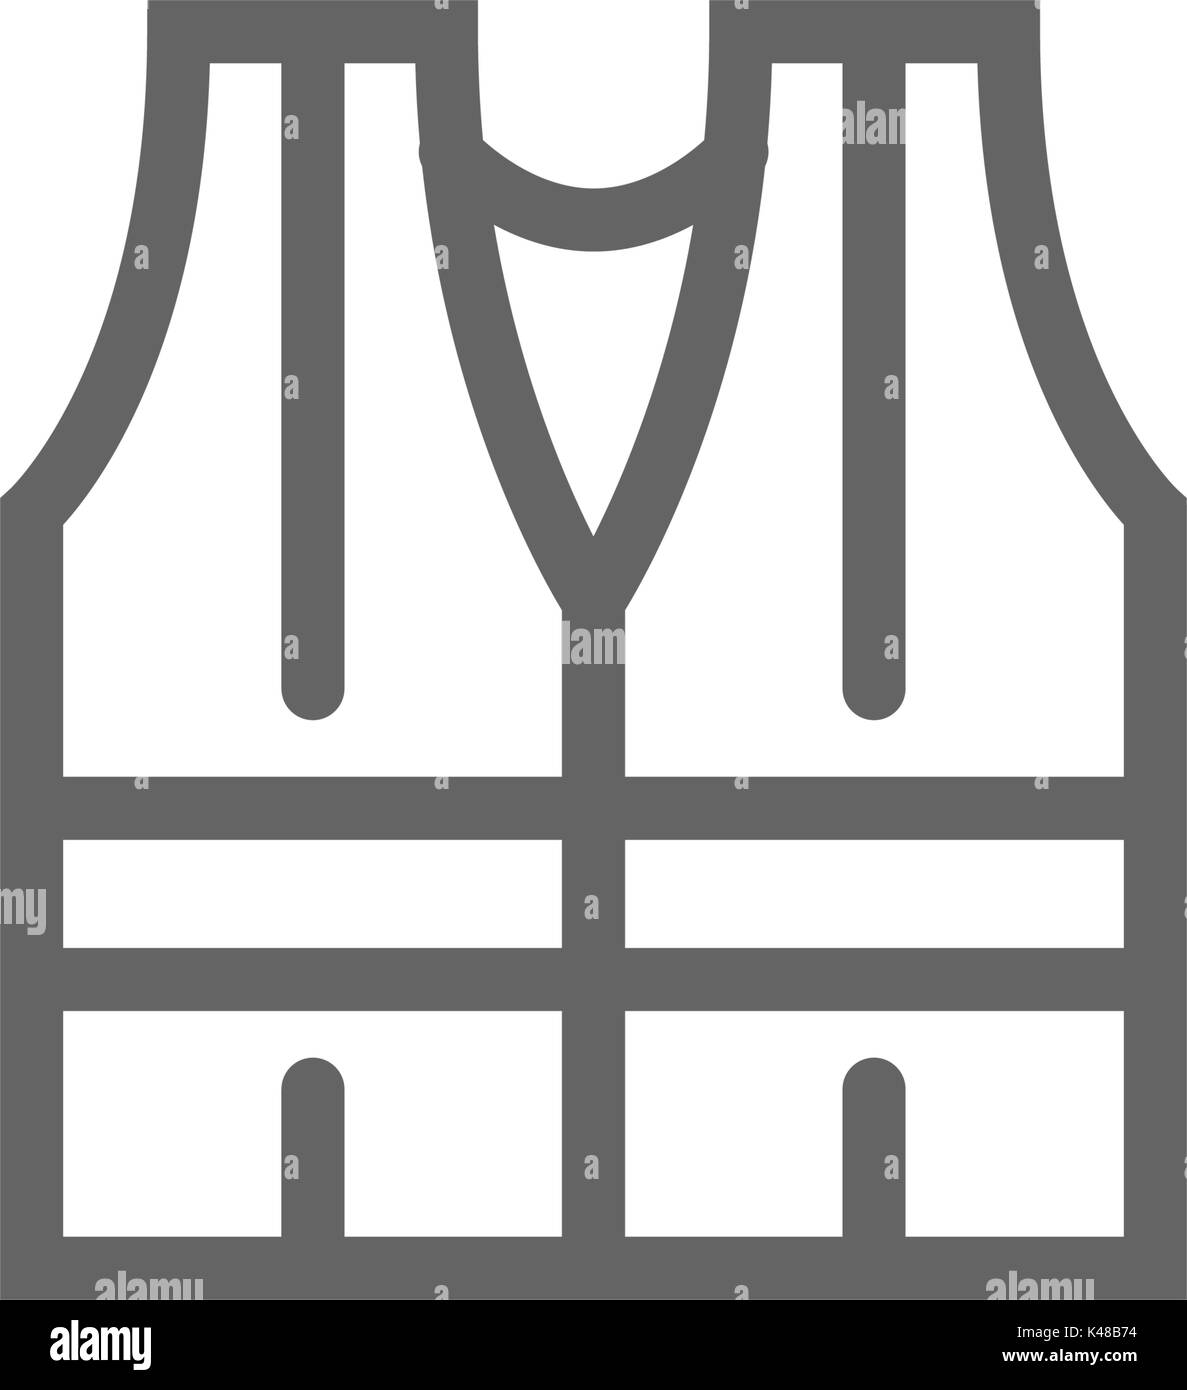 Simple safety vest icon. Symbol and sign vector illustration design. Editable Stroke. Isolated on white background - Stock Image